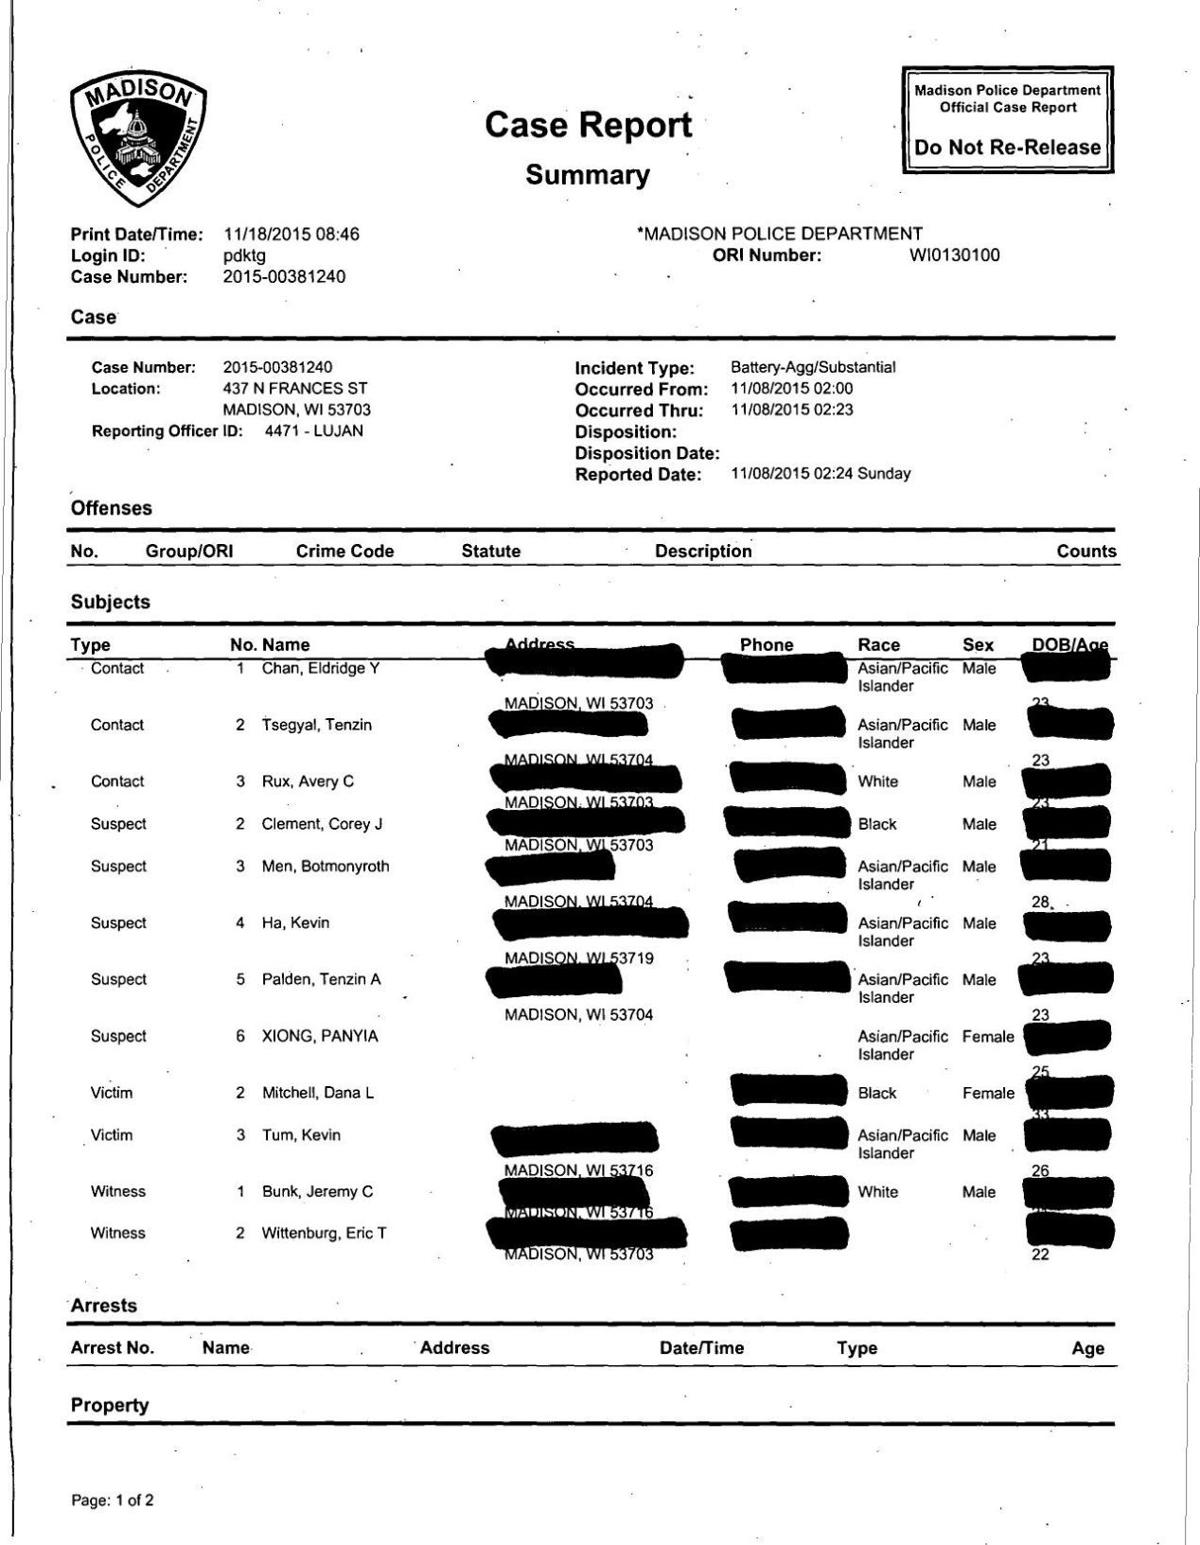 Police report describing the disorderly conduct incident